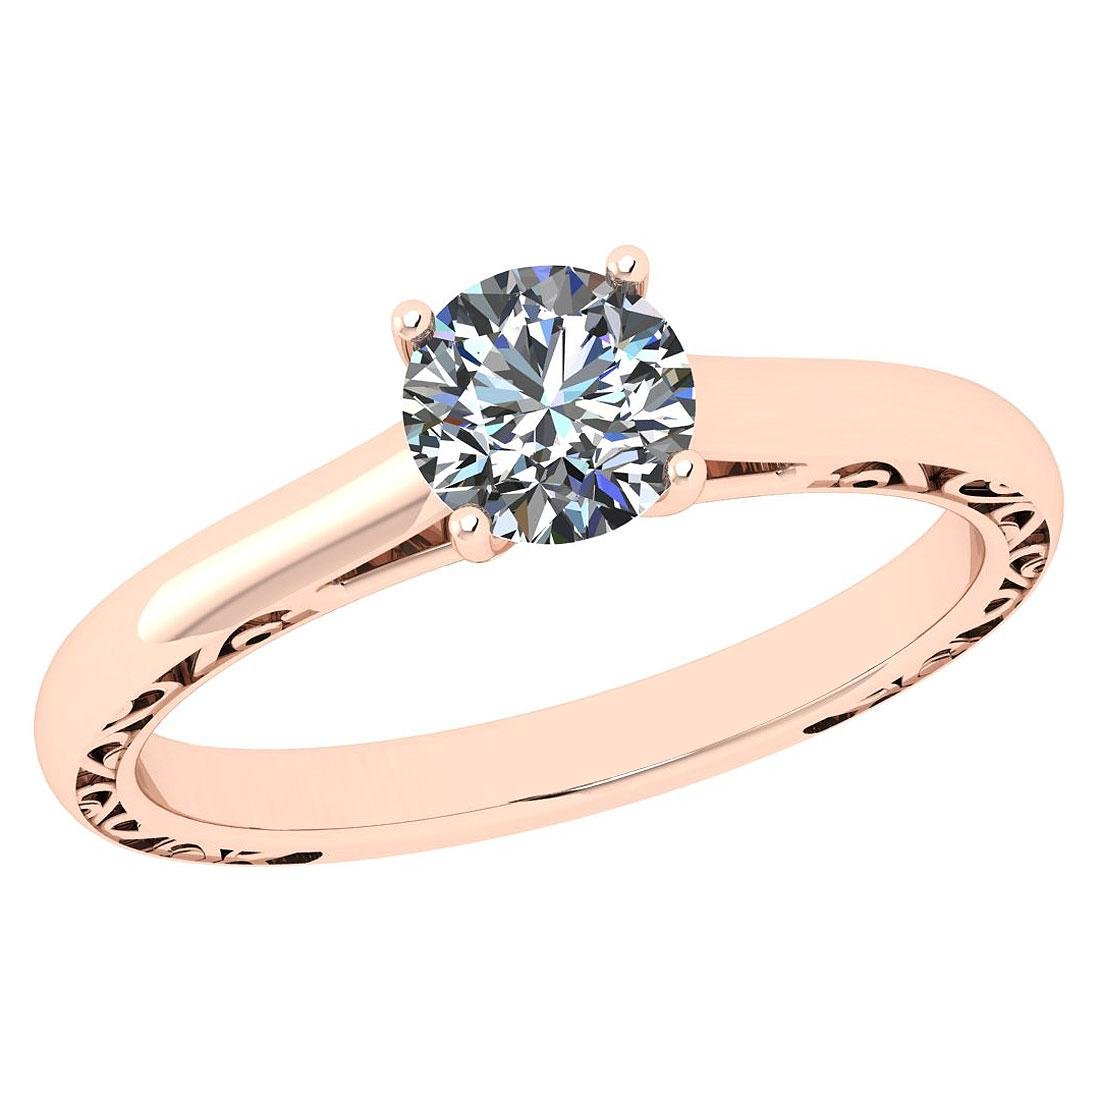 Certified Round 0.63 CTW J/VS1 Diamond Solitaire Ring I